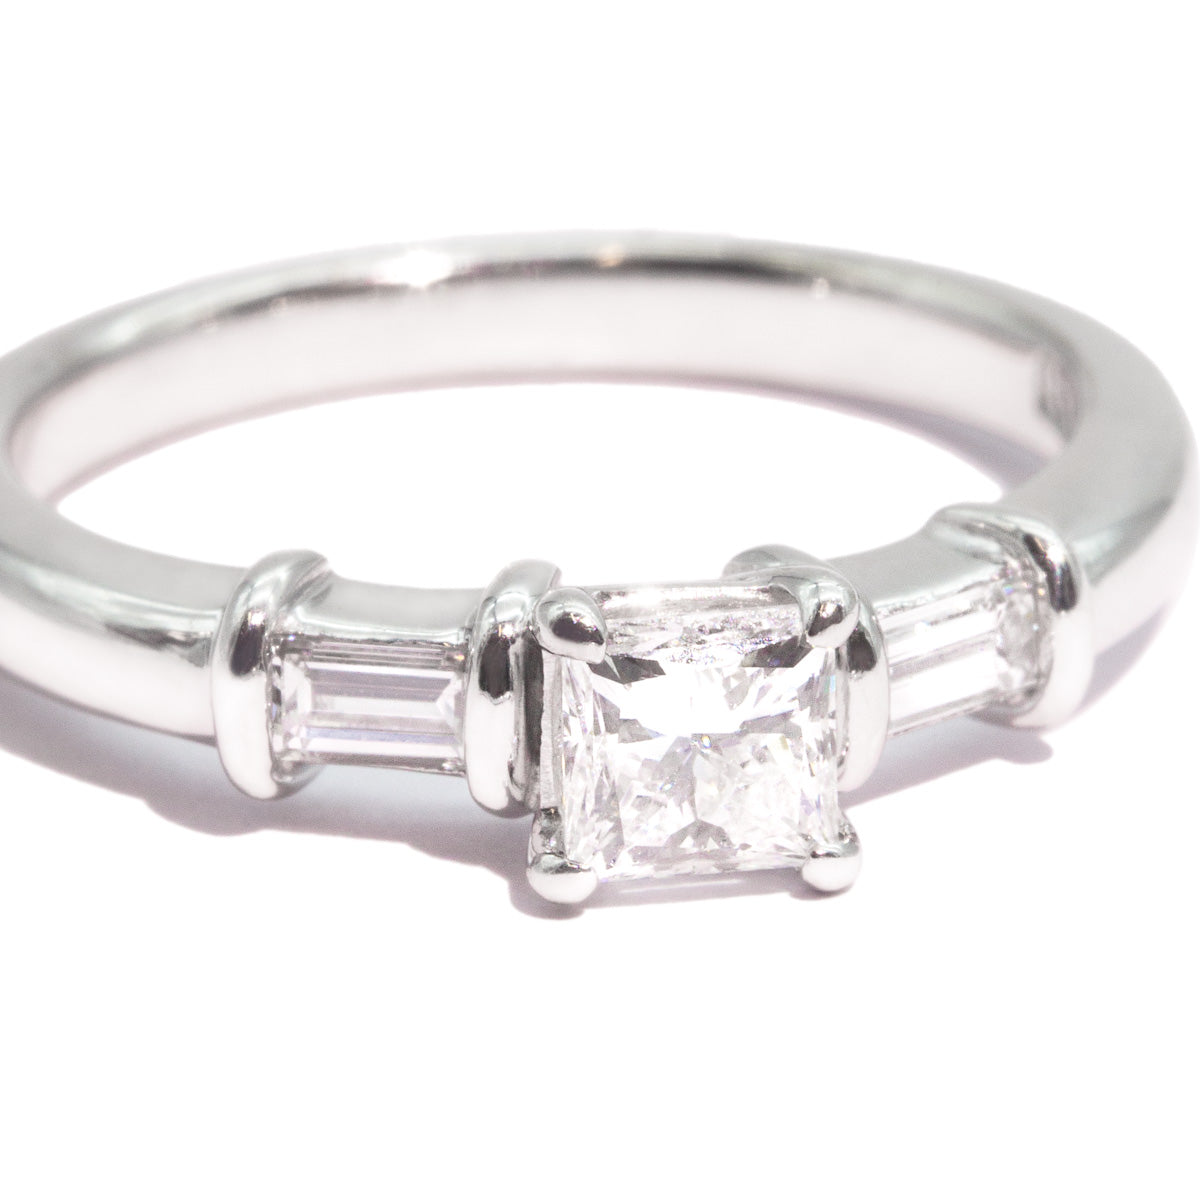 The Bernadette Vintage Diamond Ring